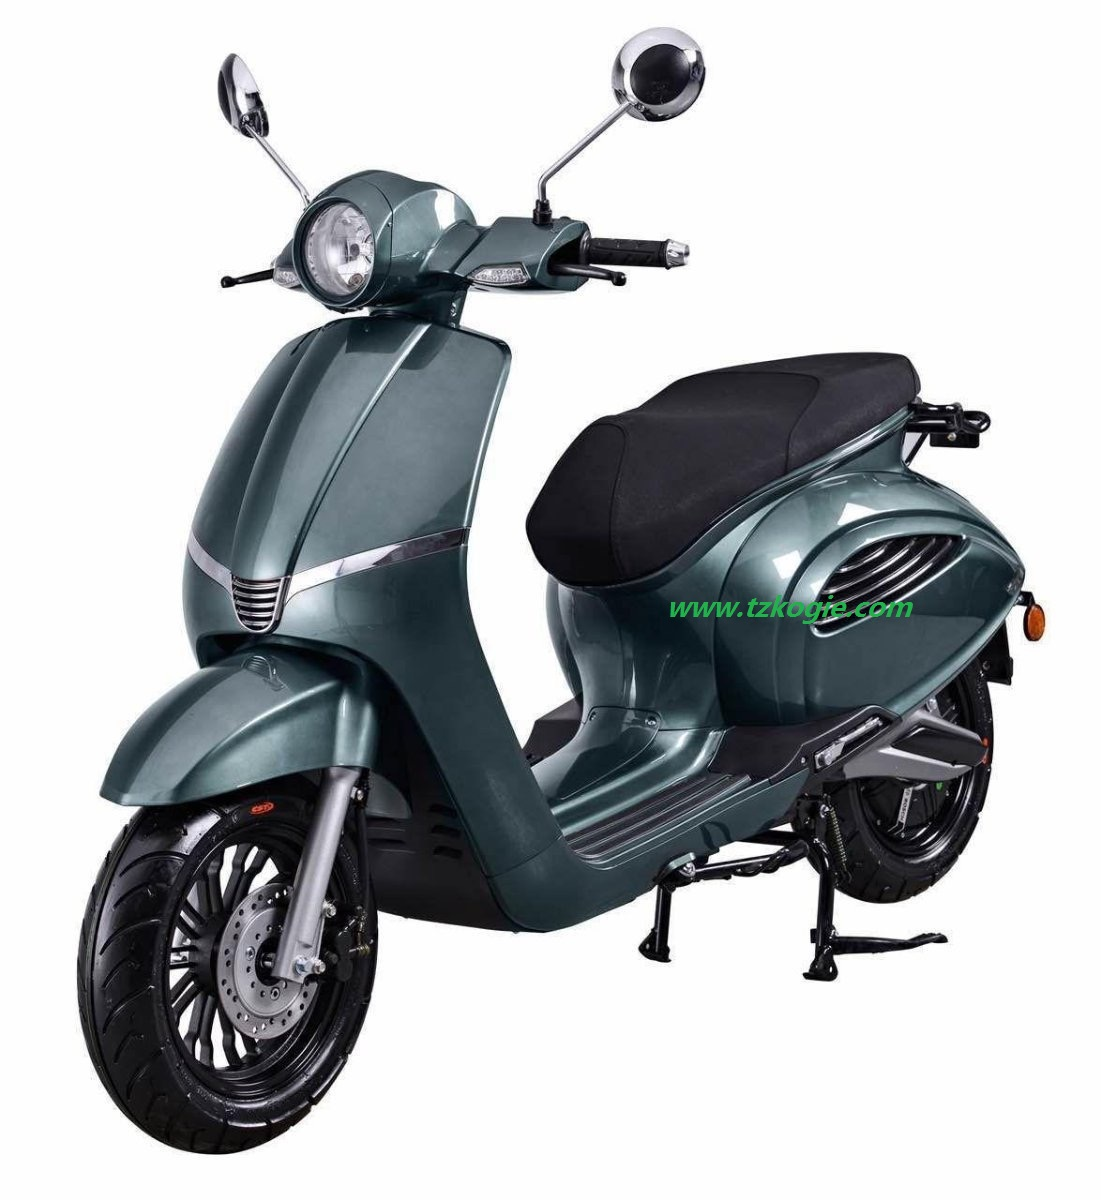 Vespa Electric Scooter >> Electric Scooter Retro Style Scooter Vespa Battery Power